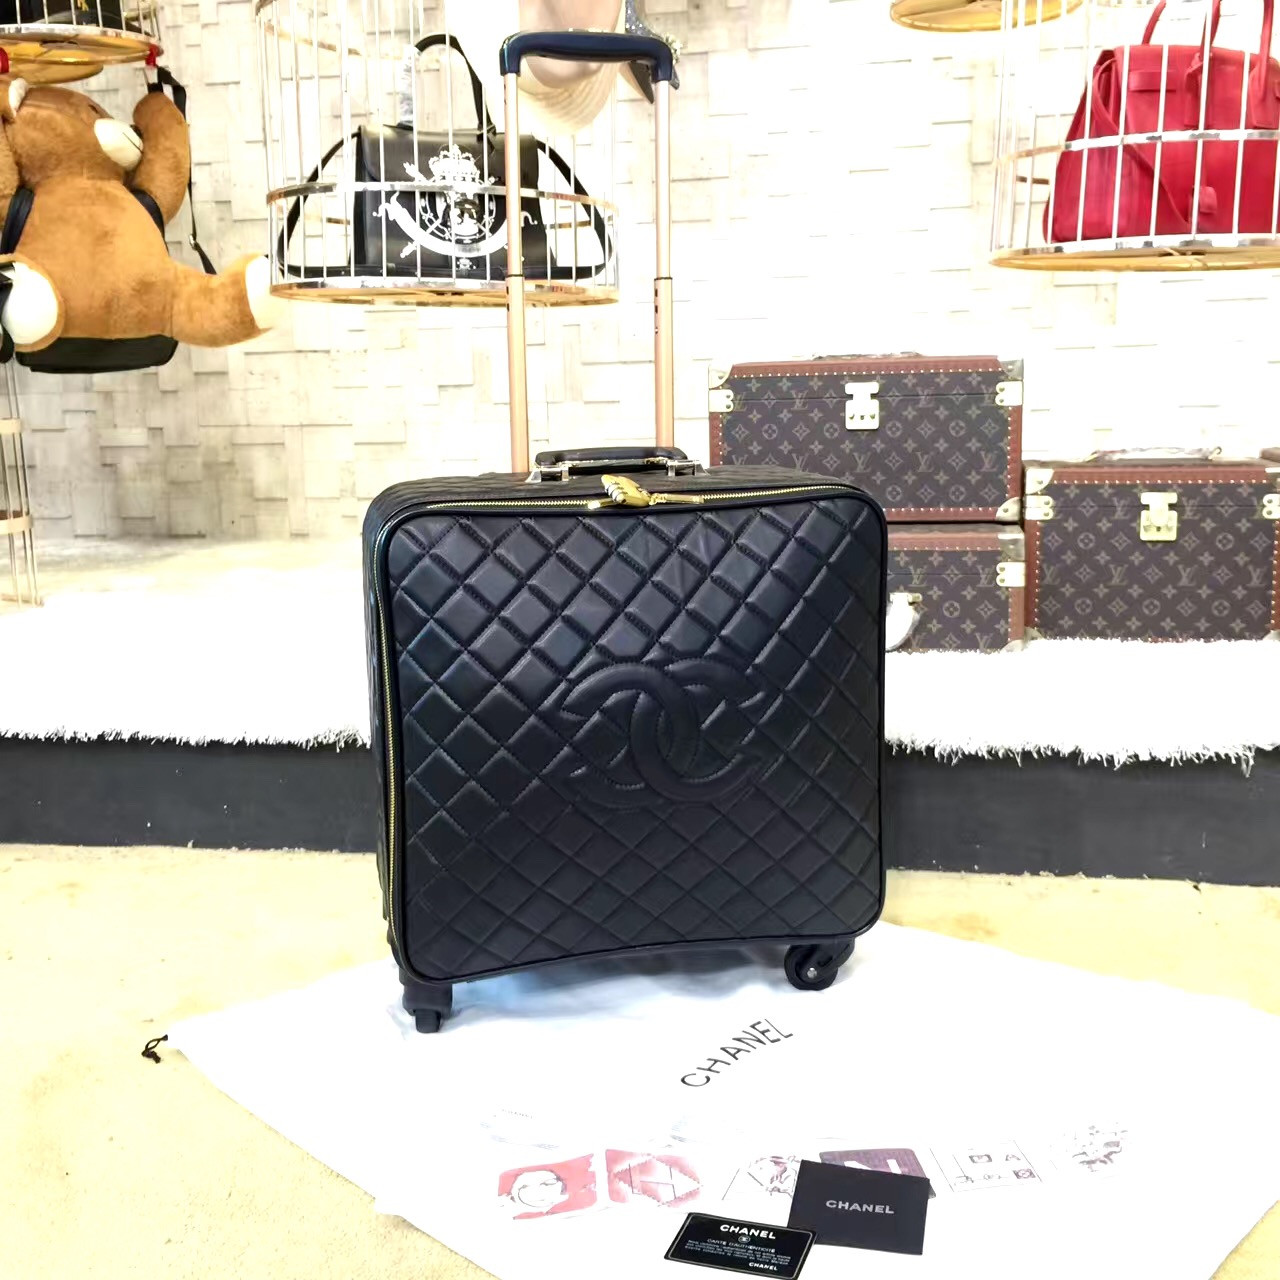 9840bfd9b223 Chanel Travel Trolley Rolling Luggage 42cm Lambskin Leather Gold Hardware  Spring/Summer 2019 Collection ,